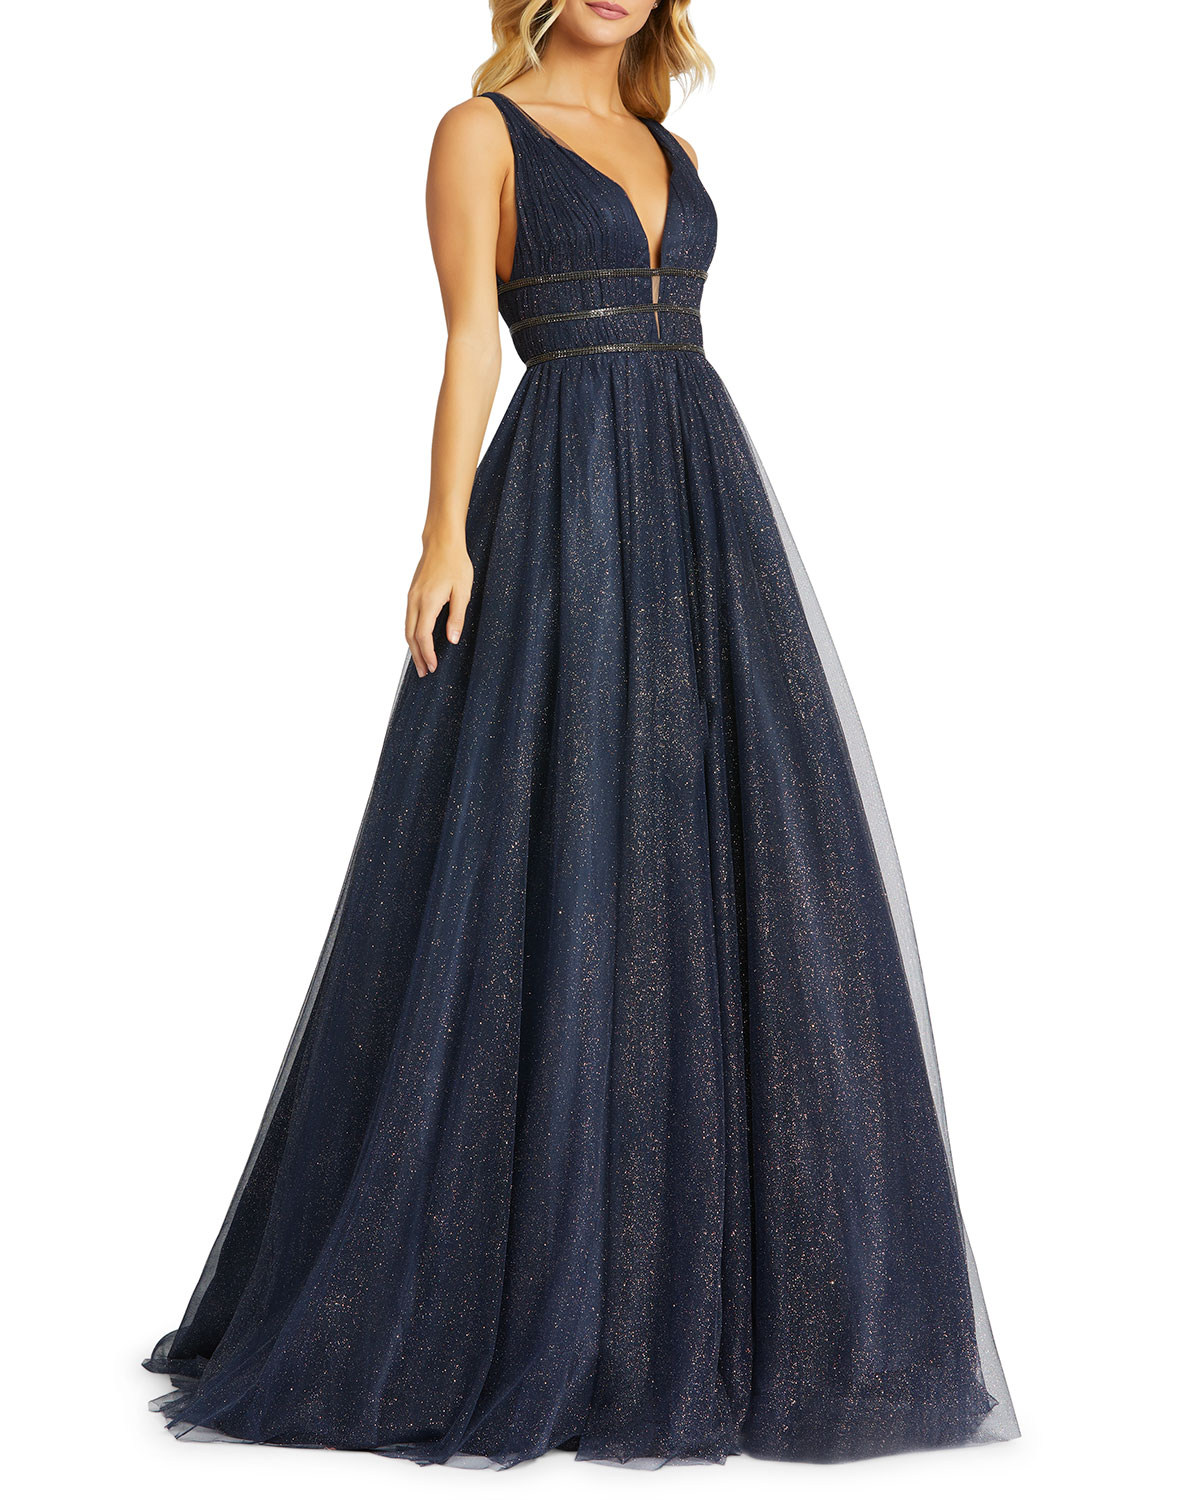 Mac Duggal Metallic Tulle Plunging Back Sleeveless Ball Gown